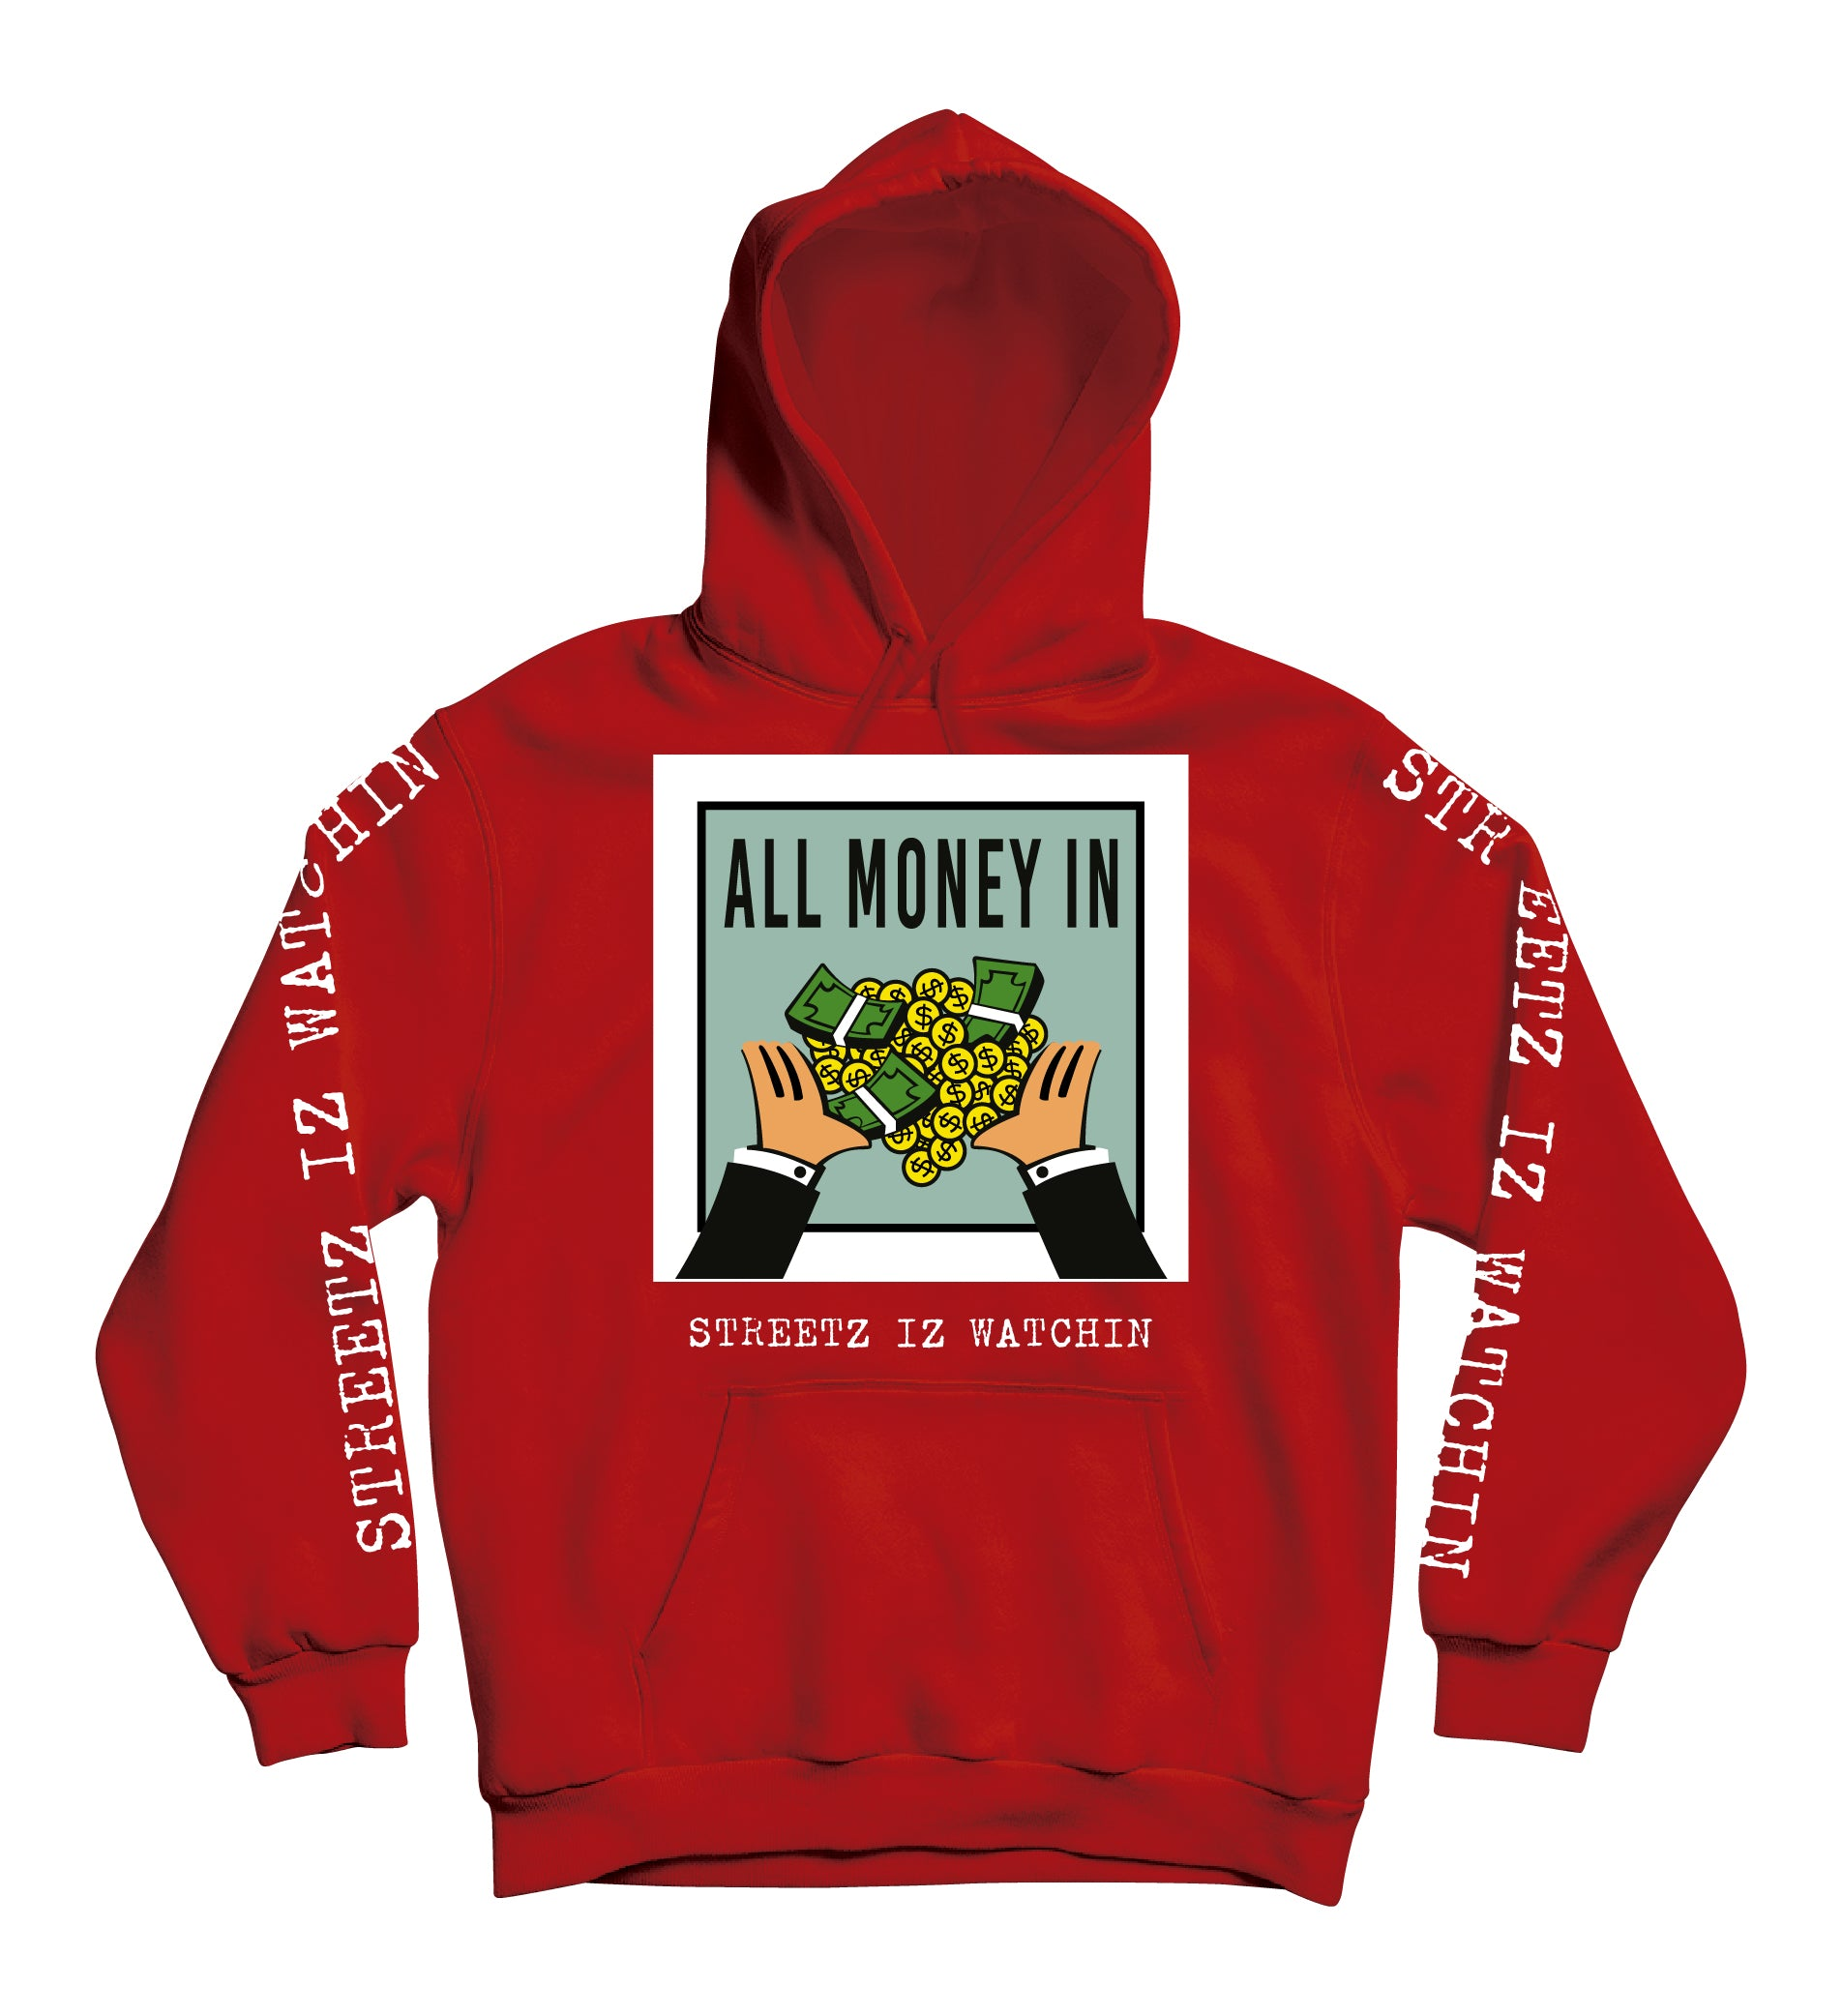 Mens Premium All Money In RED Hoodie